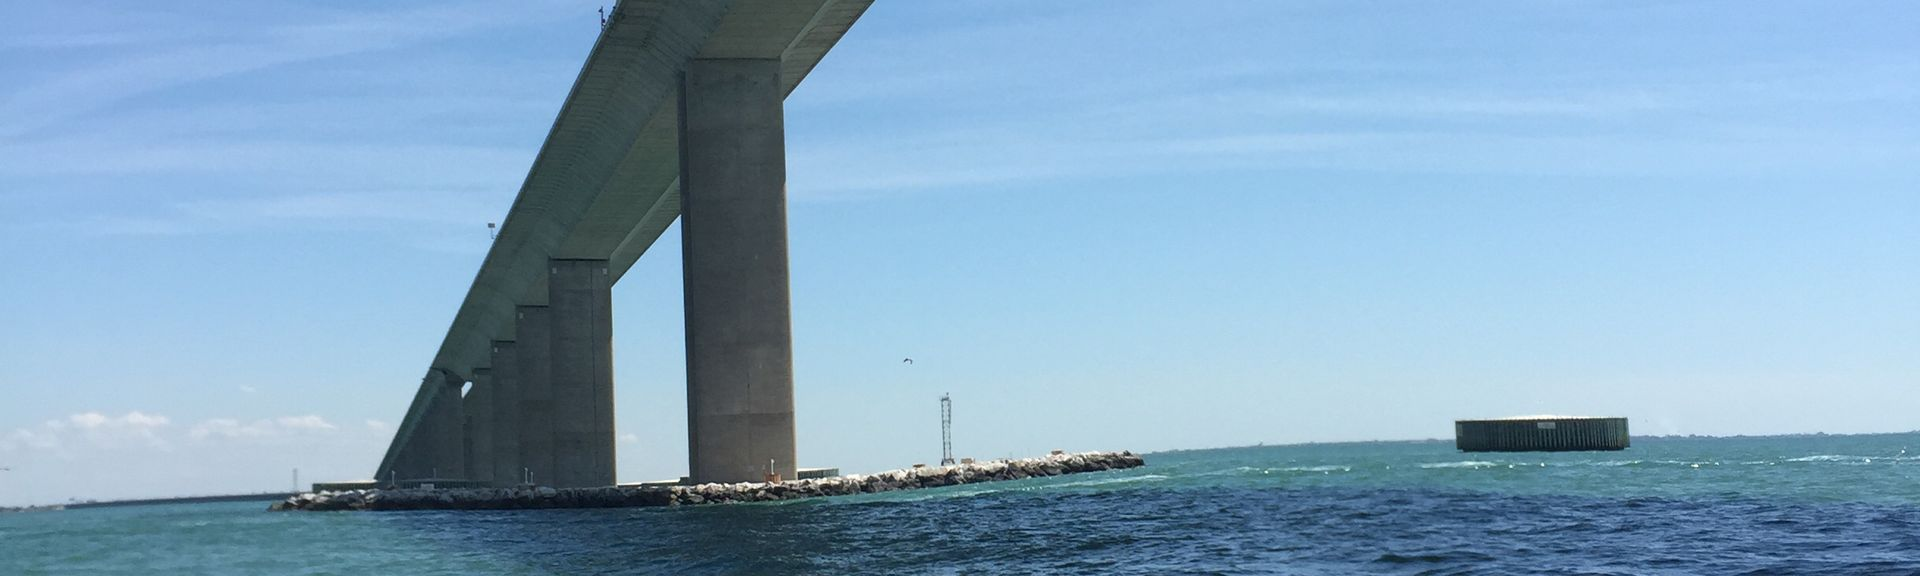 Pinellas Point, Saint Petersburg, Florida, Vereinigte Staaten